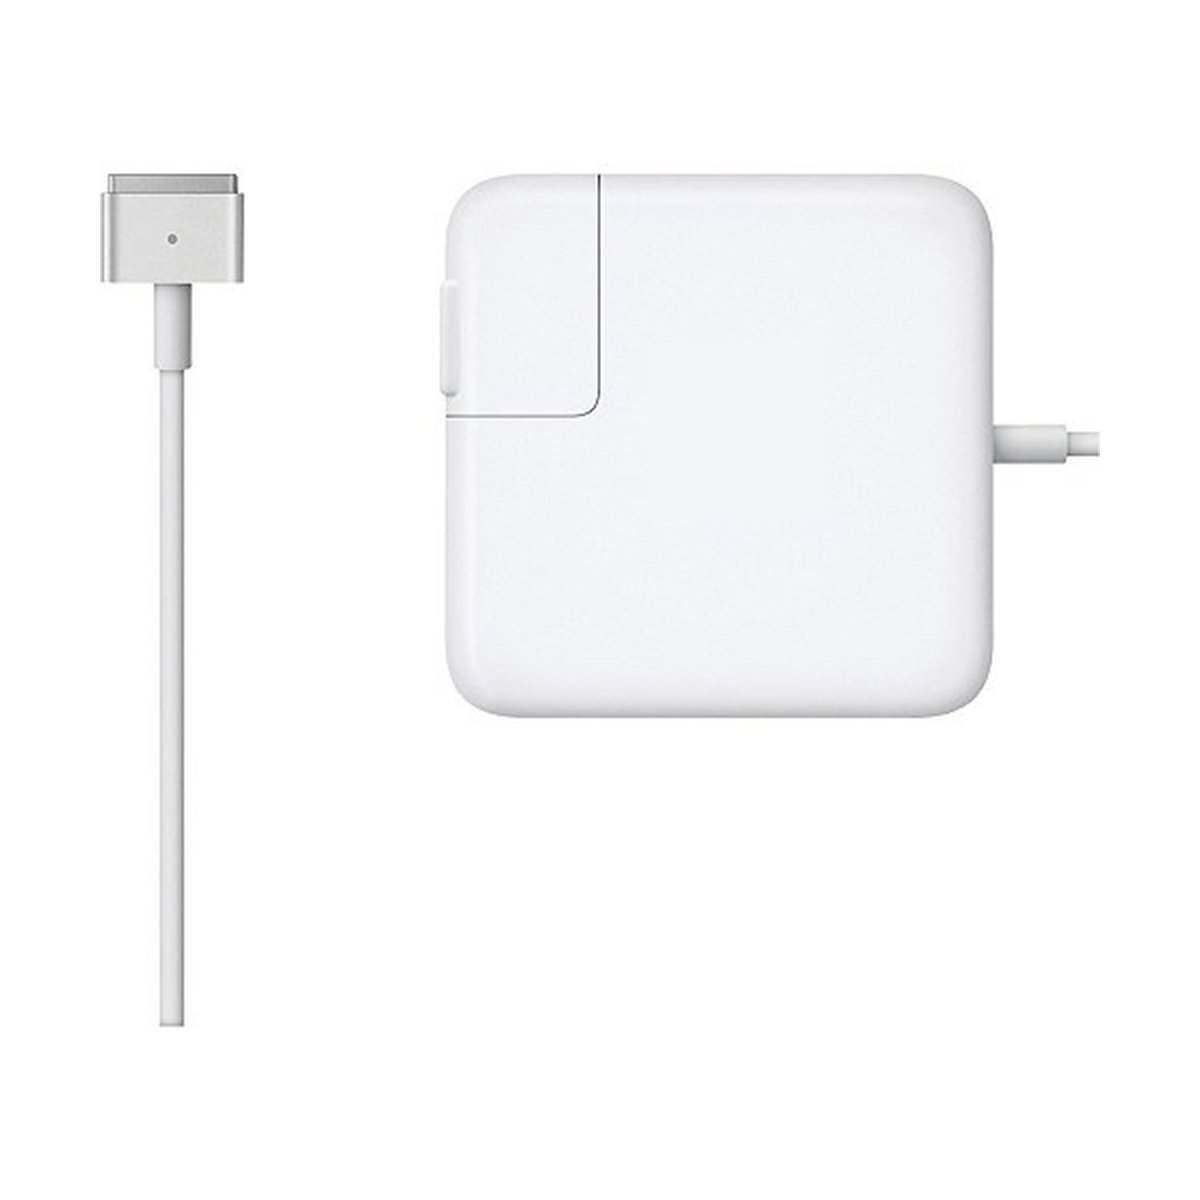 Macbook Air Charger, AC 45W Magsafe 2 T-Tip Power Adapter Charger replacement for MacBook Air 11/13 inch (45TW)